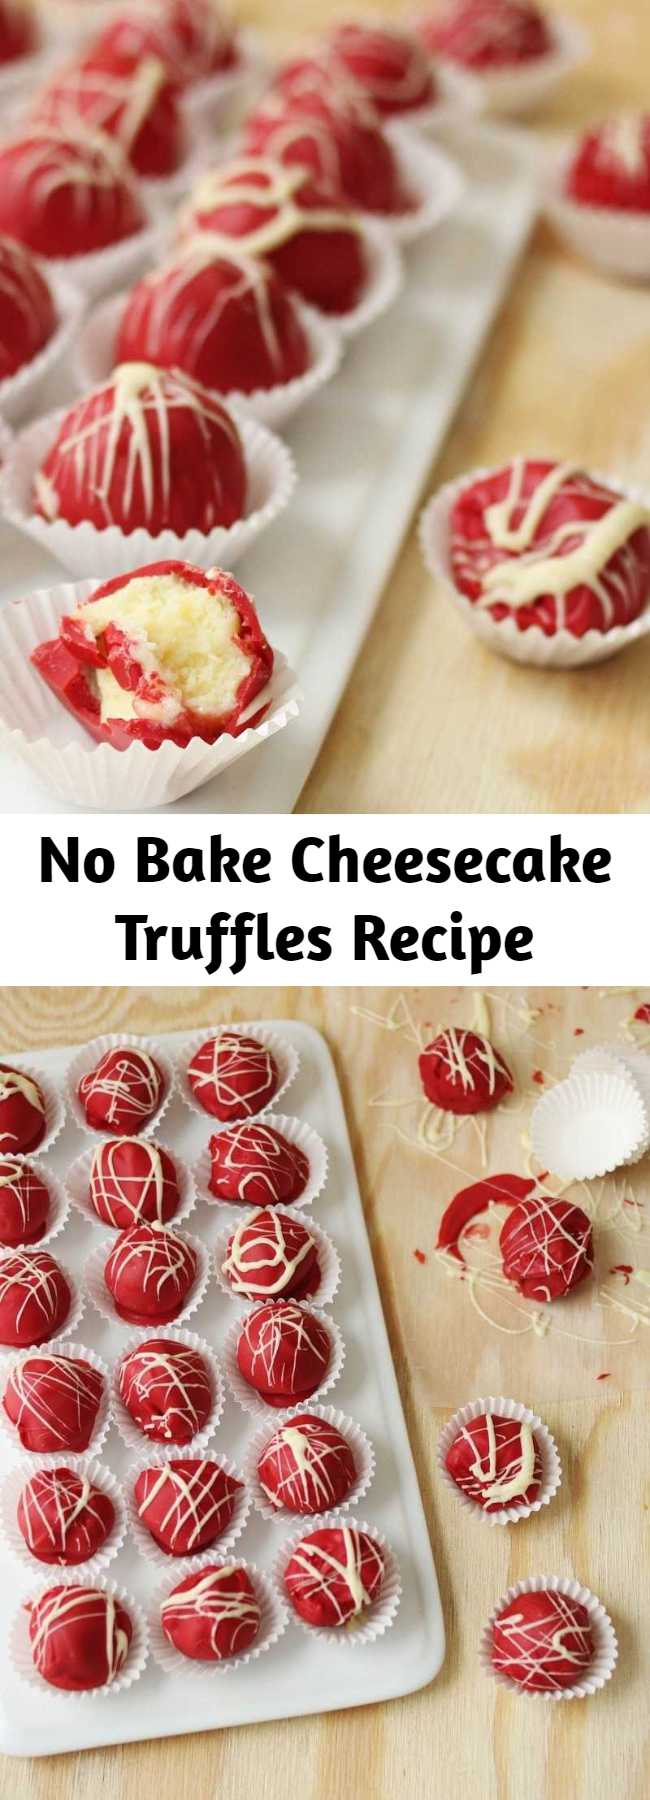 """No Bake Cheesecake Truffles Recipe - These cheesecake truffles are a little bit magic. There's no baking involved. Actually, there's really no """"cooking"""" to speak of. This isn't really even a recipe, more assembly instructions. And the lesson I draw from this is that sometimes magic = convenience."""